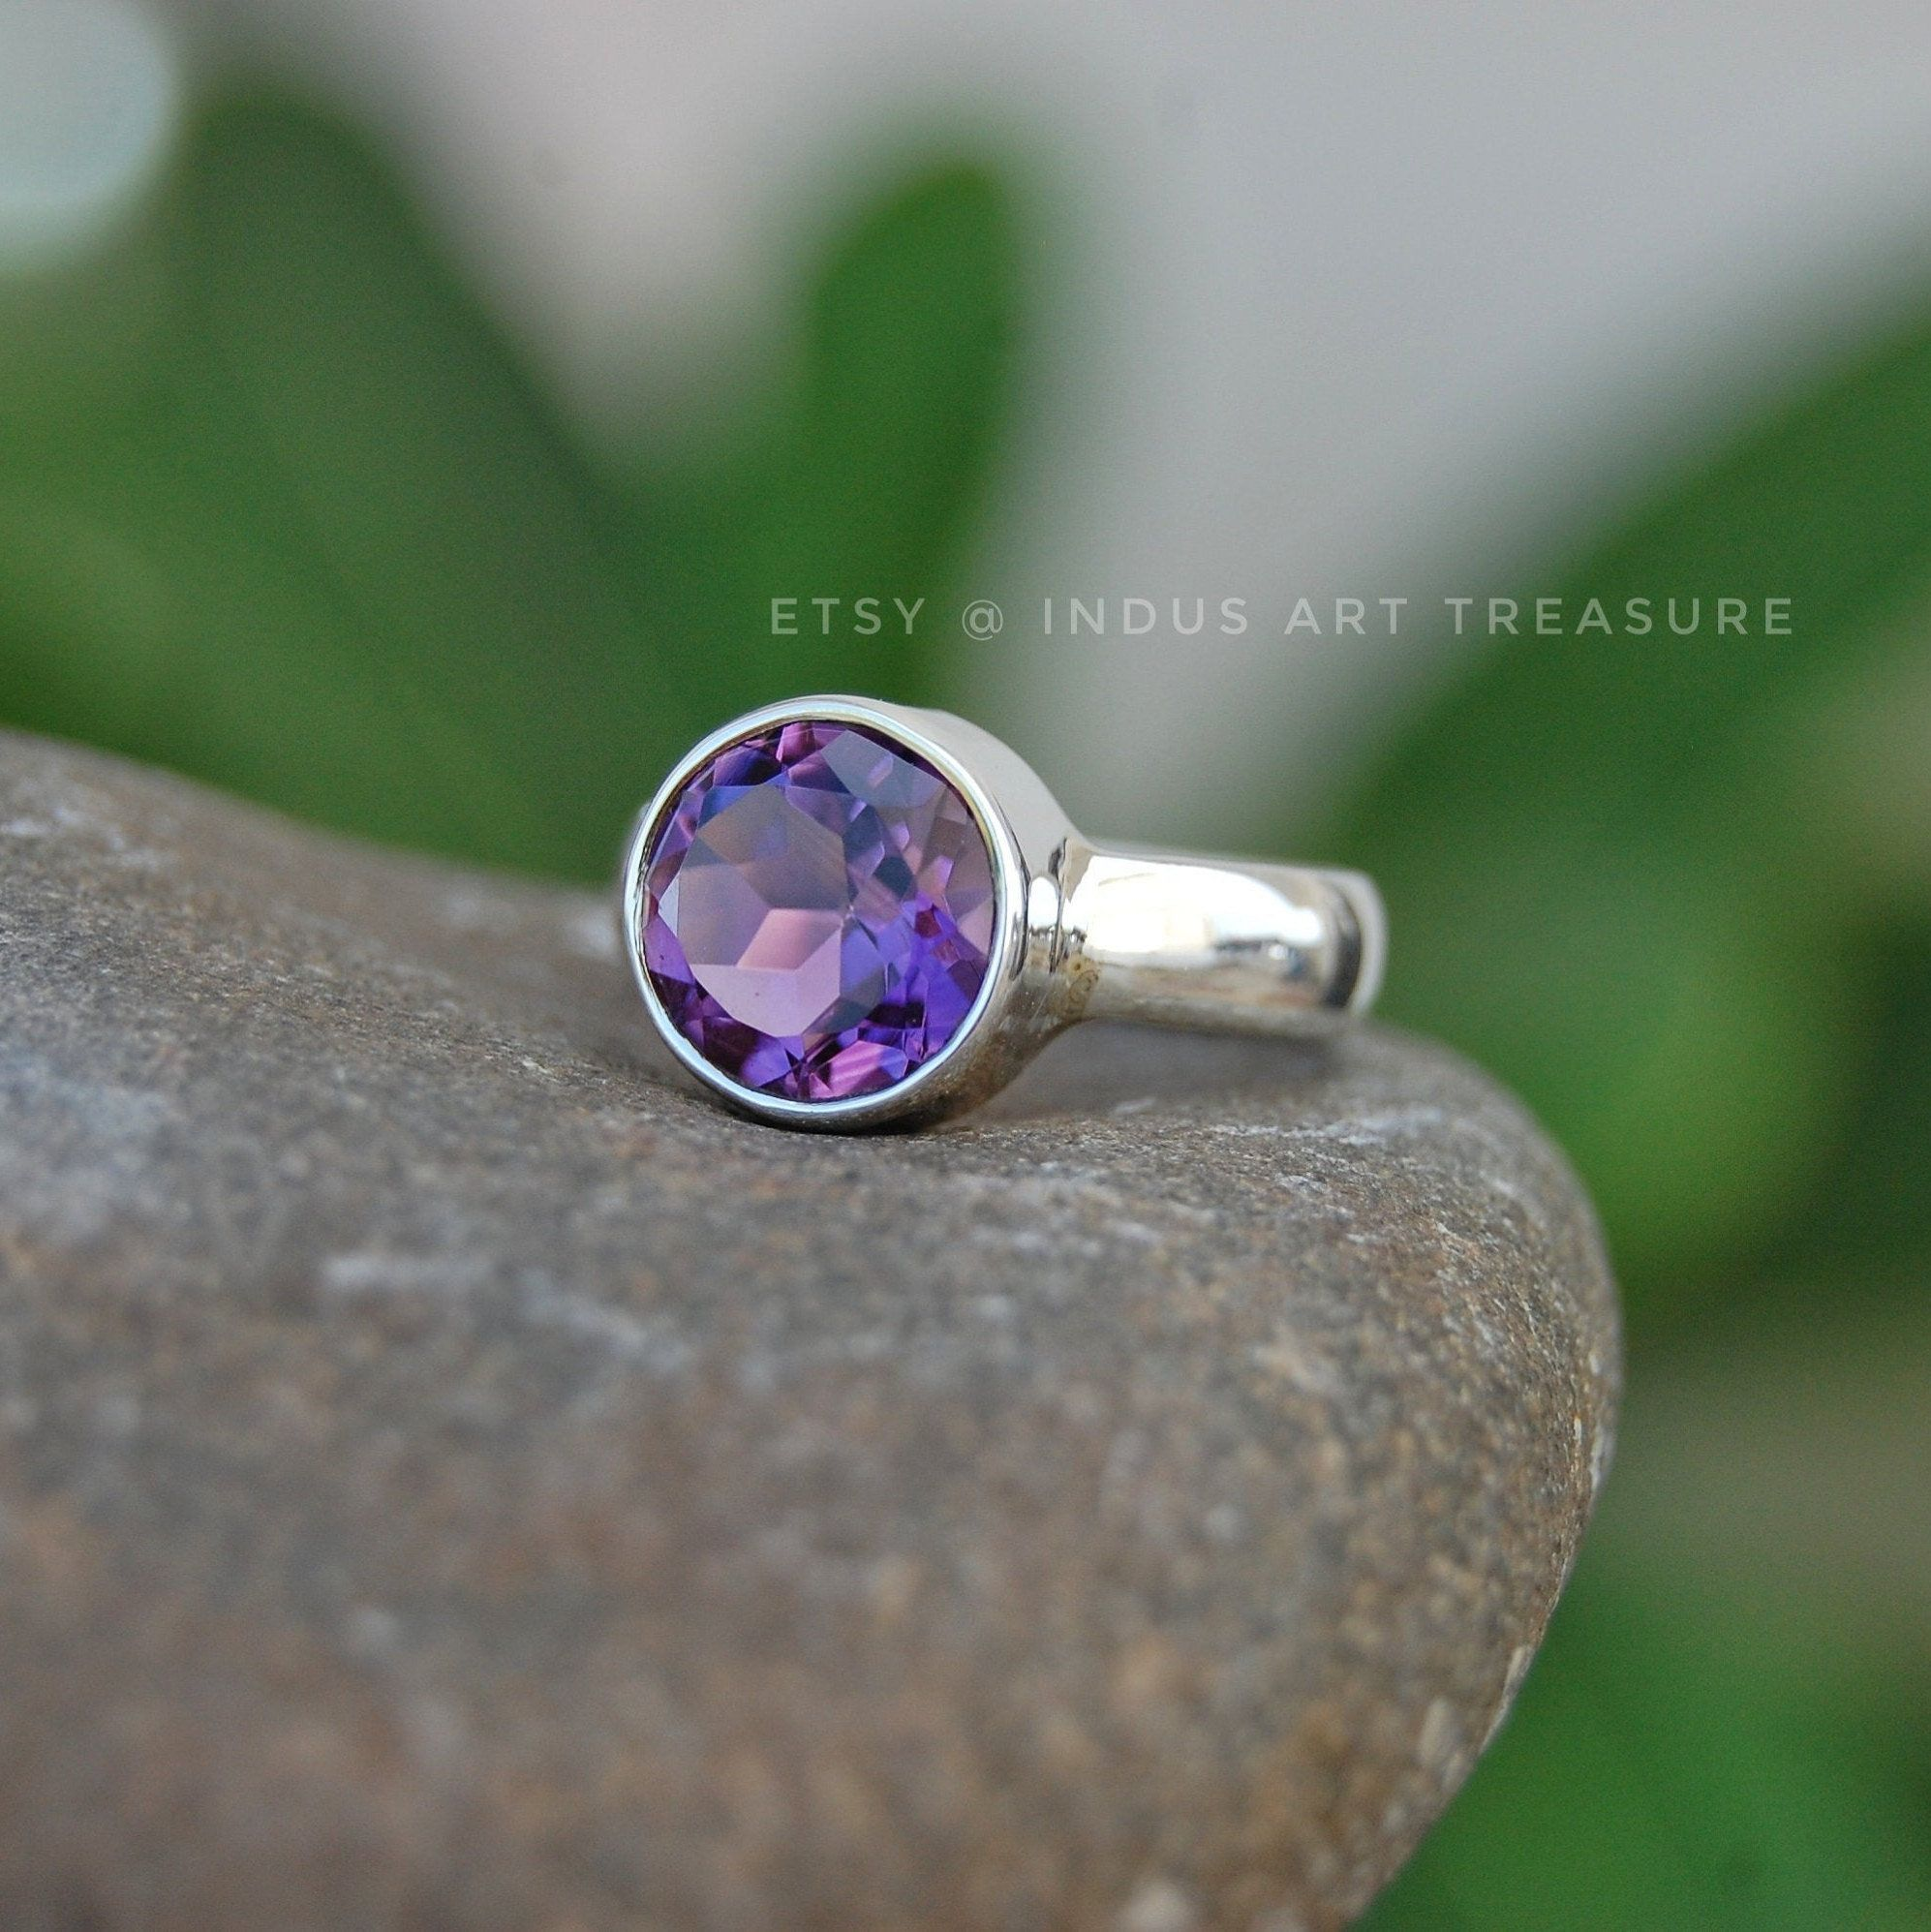 925 Sterling Silver Fashion Ring Ring For Her  Gift B Amethyst Sterling Silver Ring Handmade Ring Birthstone Ring Statement Ring